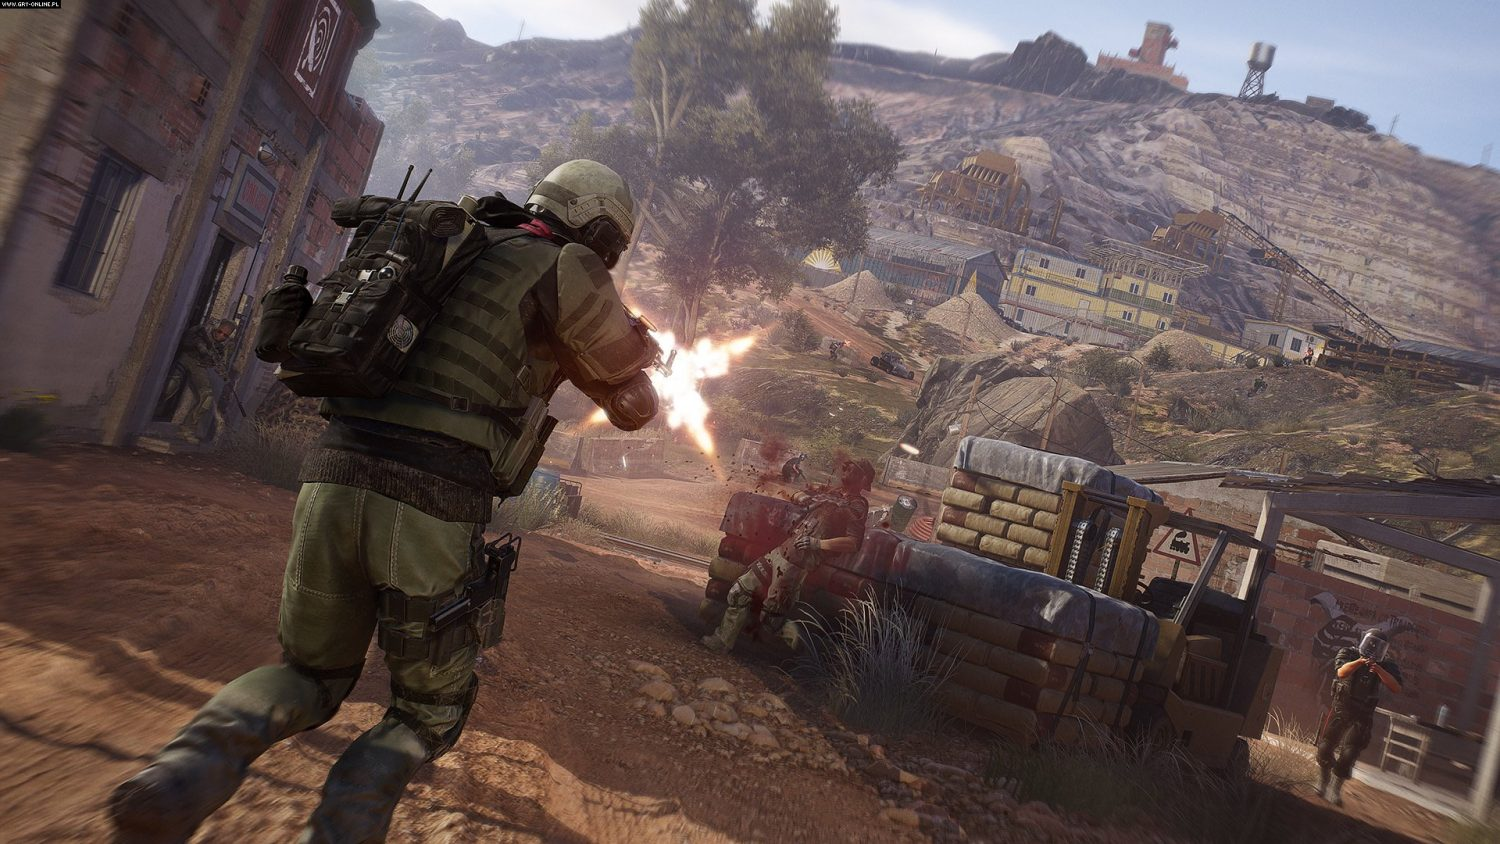 Pega essa Análise! Ghost Recon Breakpoint